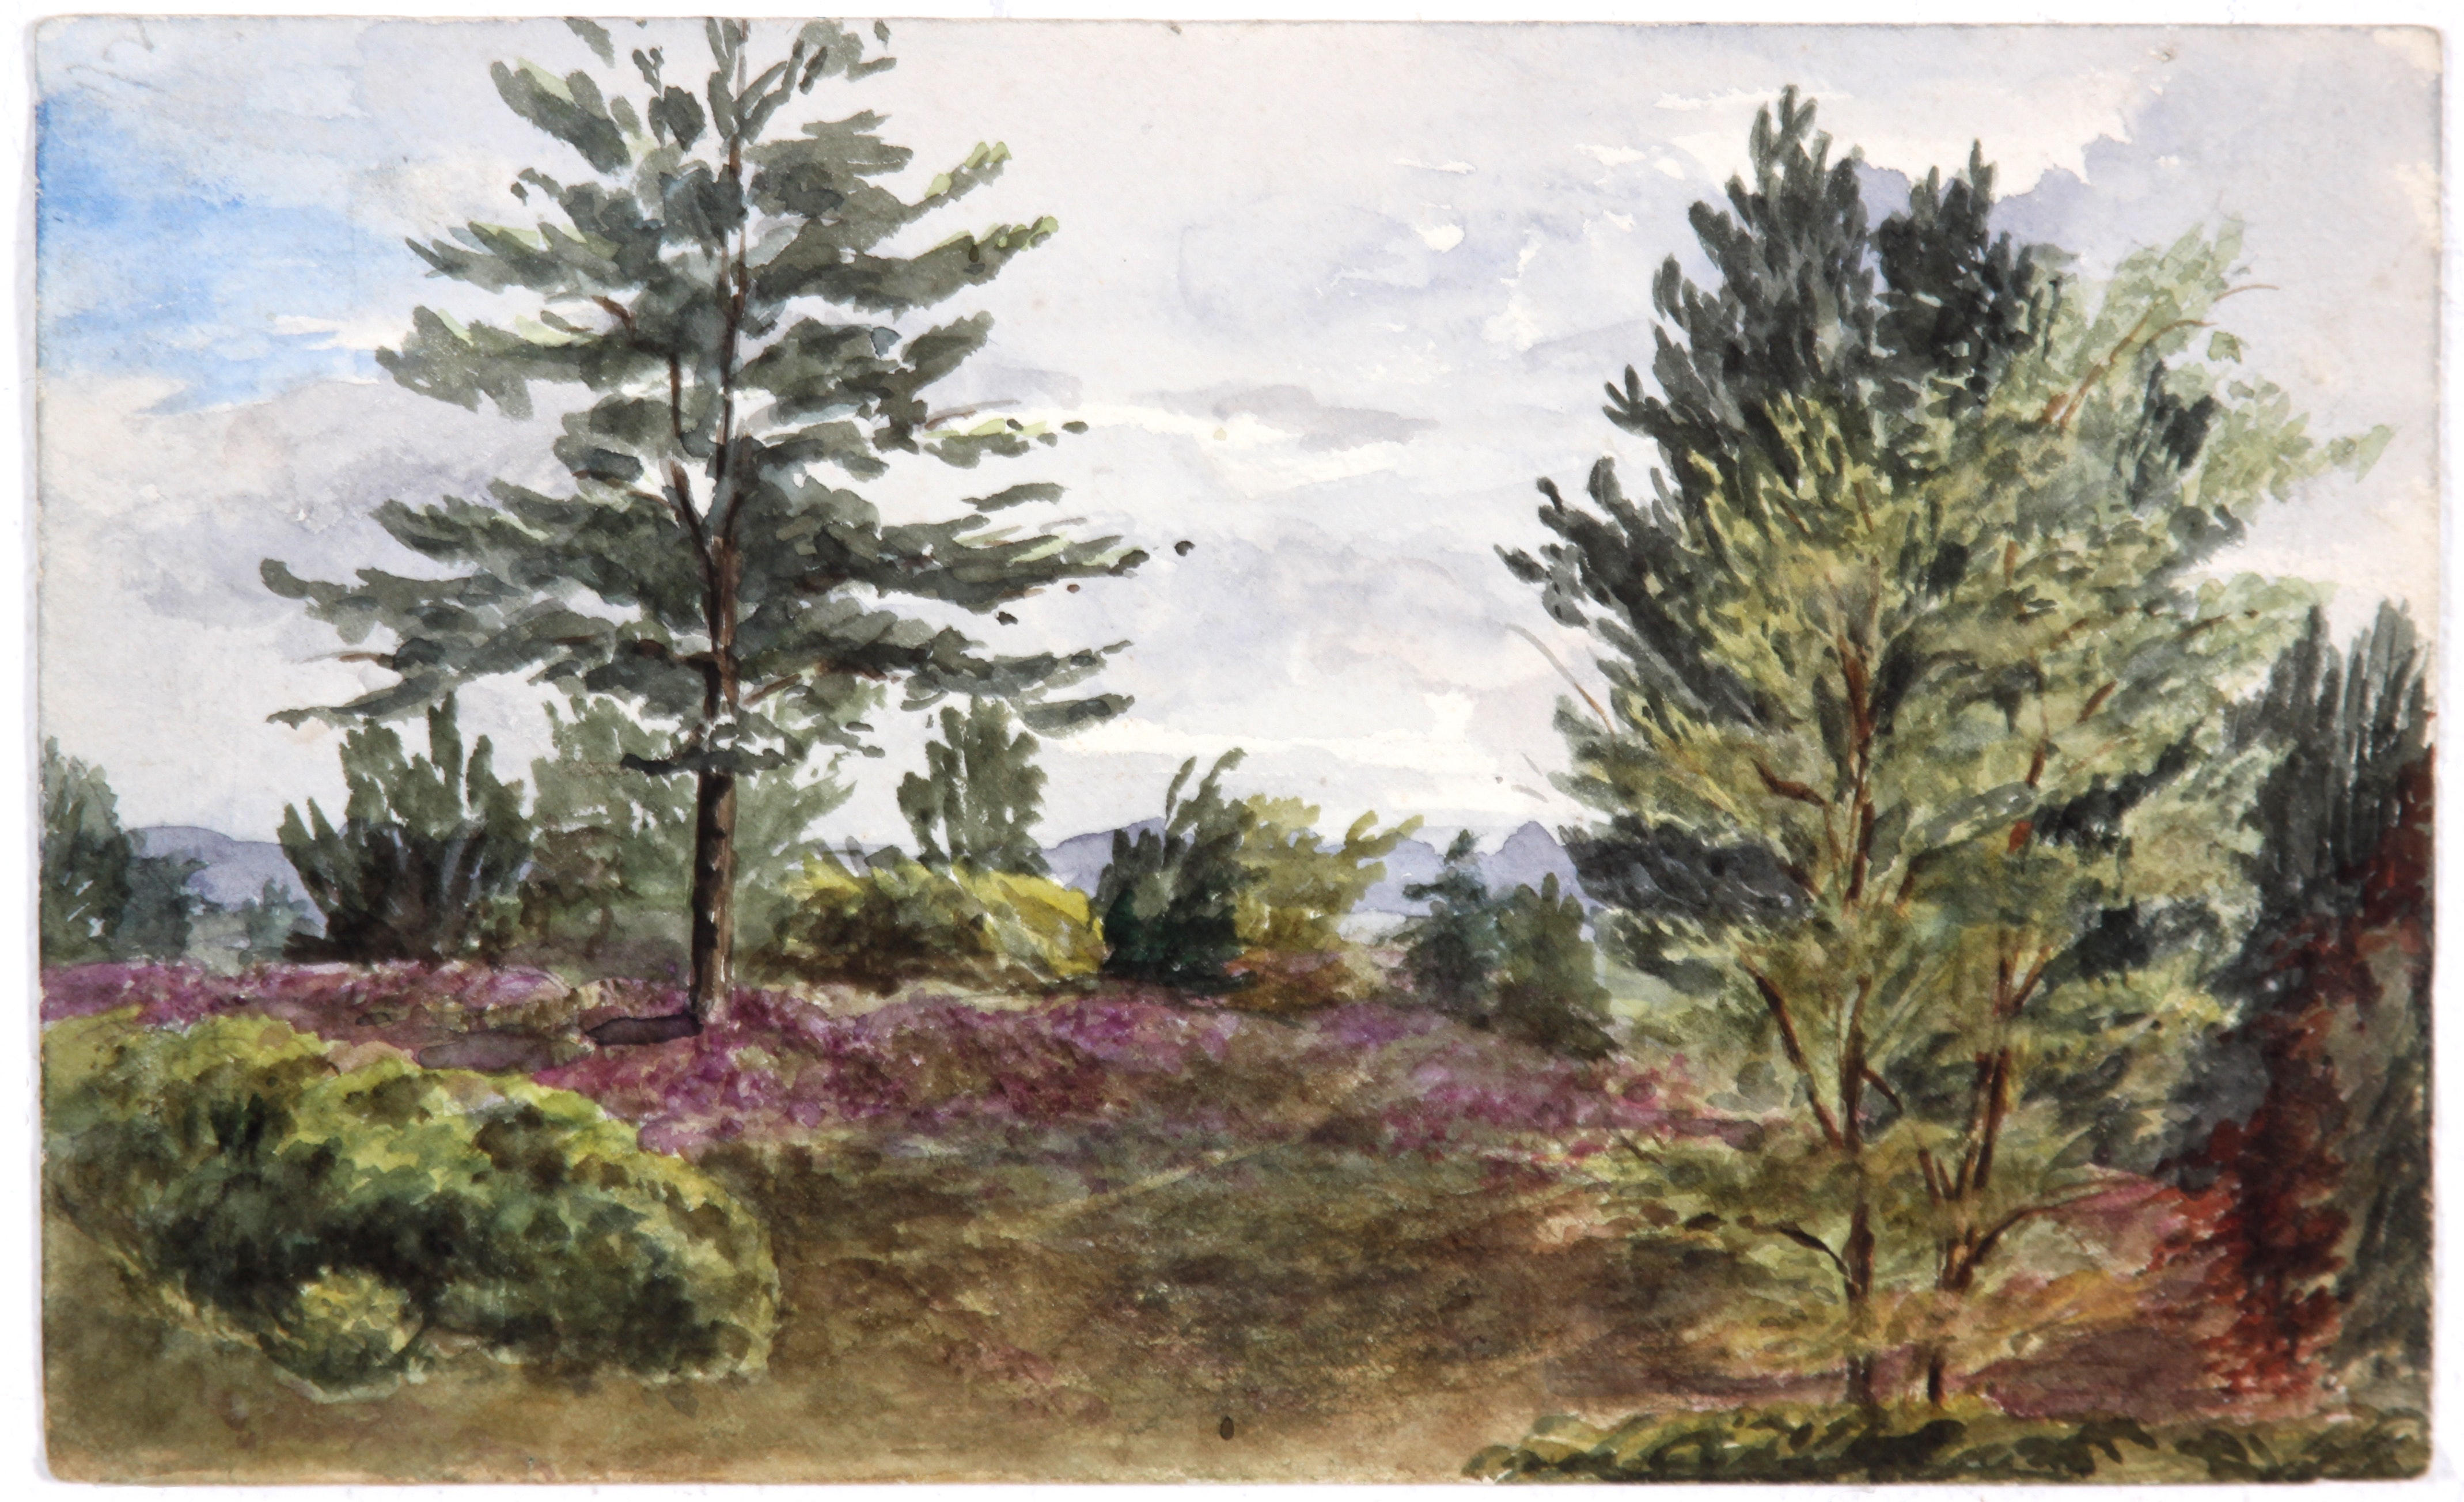 Early and Original Landscape in Watercolor